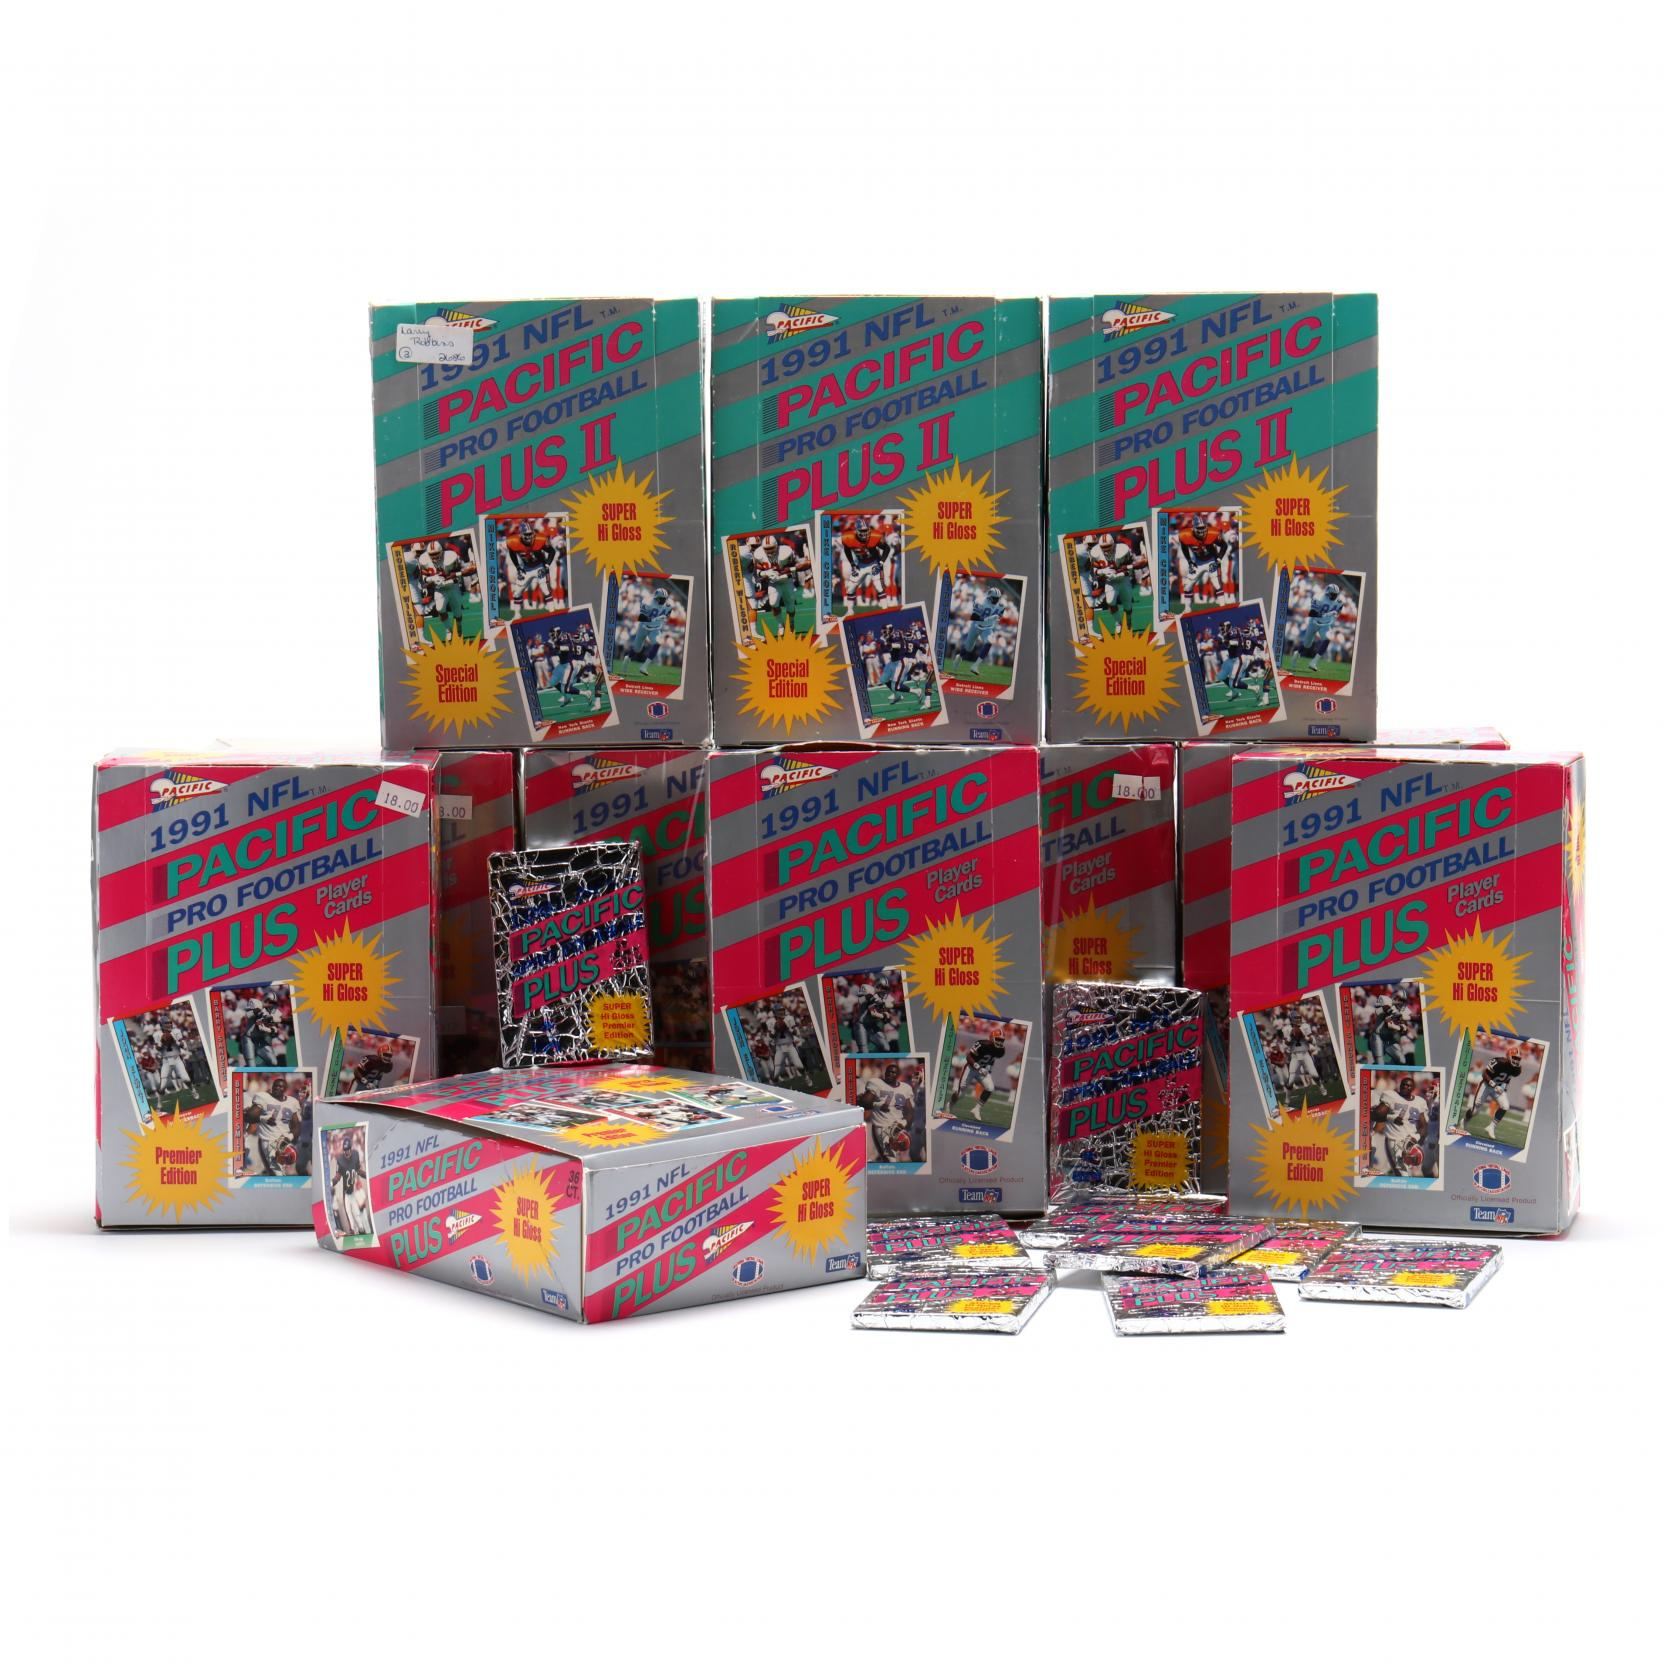 eleven-pacific-plus-1991-pro-football-card-boxes